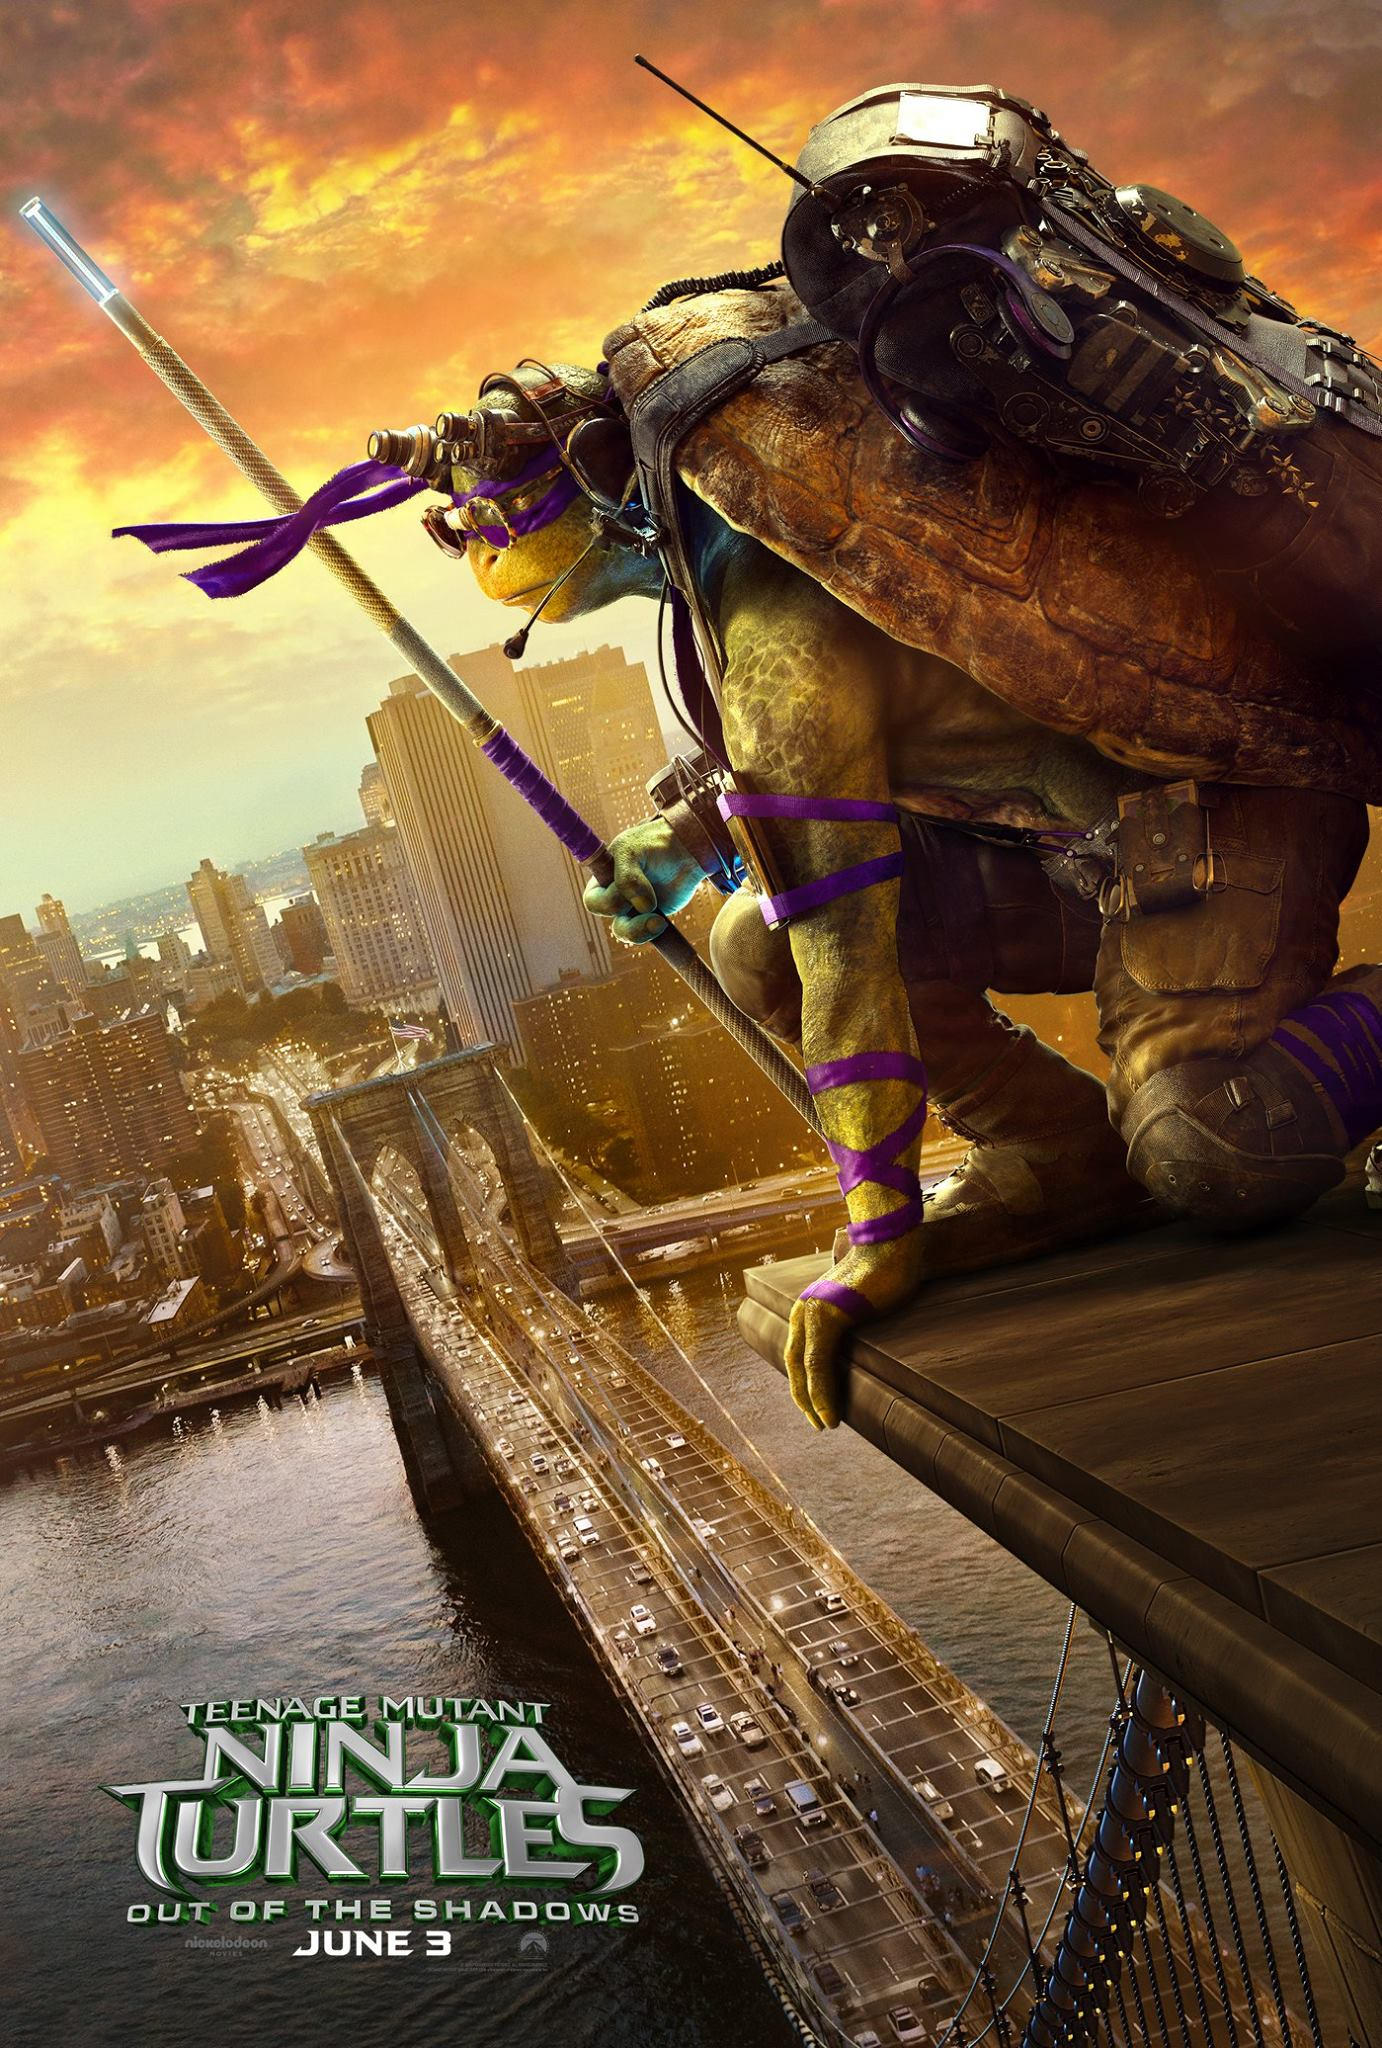 Teenage Mutant Ninja Turtles: Out of the Shadows Pictures